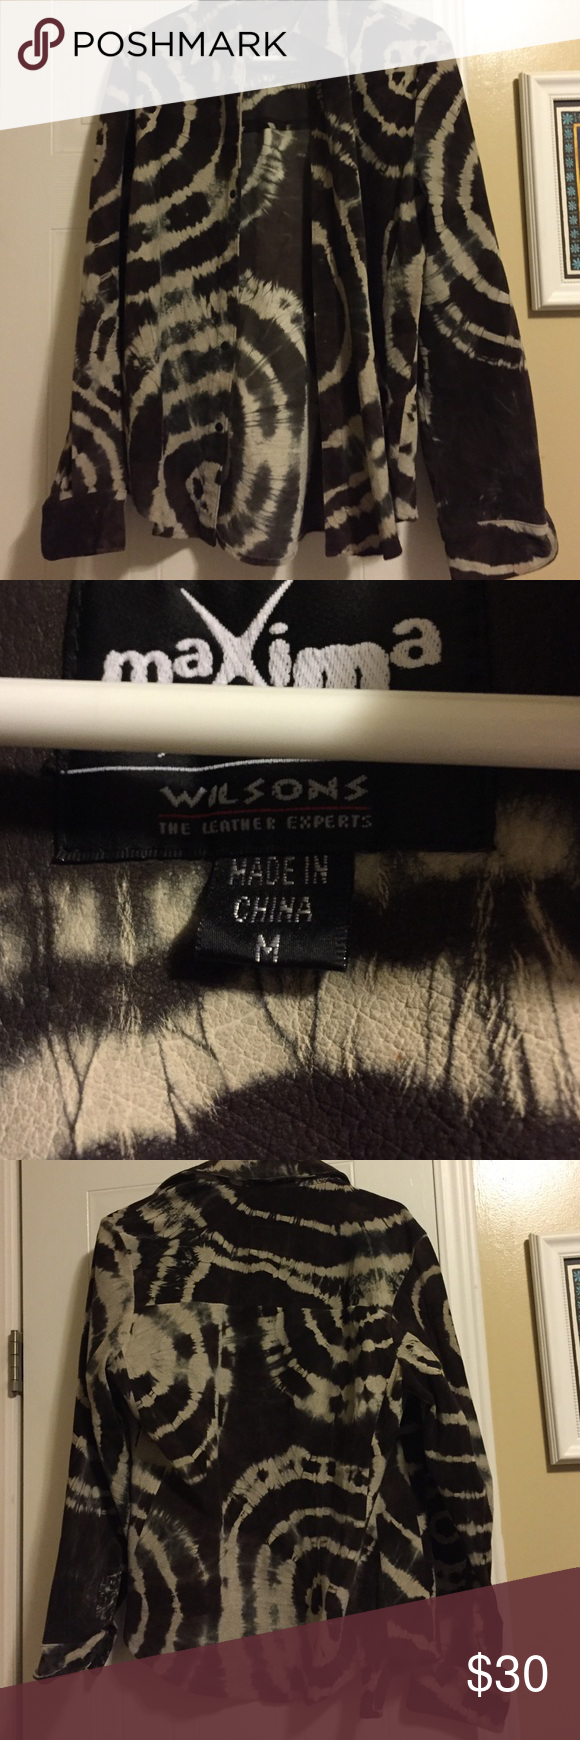 Wilsons suede tie dye shirt medium Cue tan and brown tie dye suede shirt from wilsons leather size medium! Snap buttons very cute on. Any questions just ask! I am listing more items today as I am closet cleaning from stored items! Check back for more stuff Wilsons Leather Tops Button Down Shirts